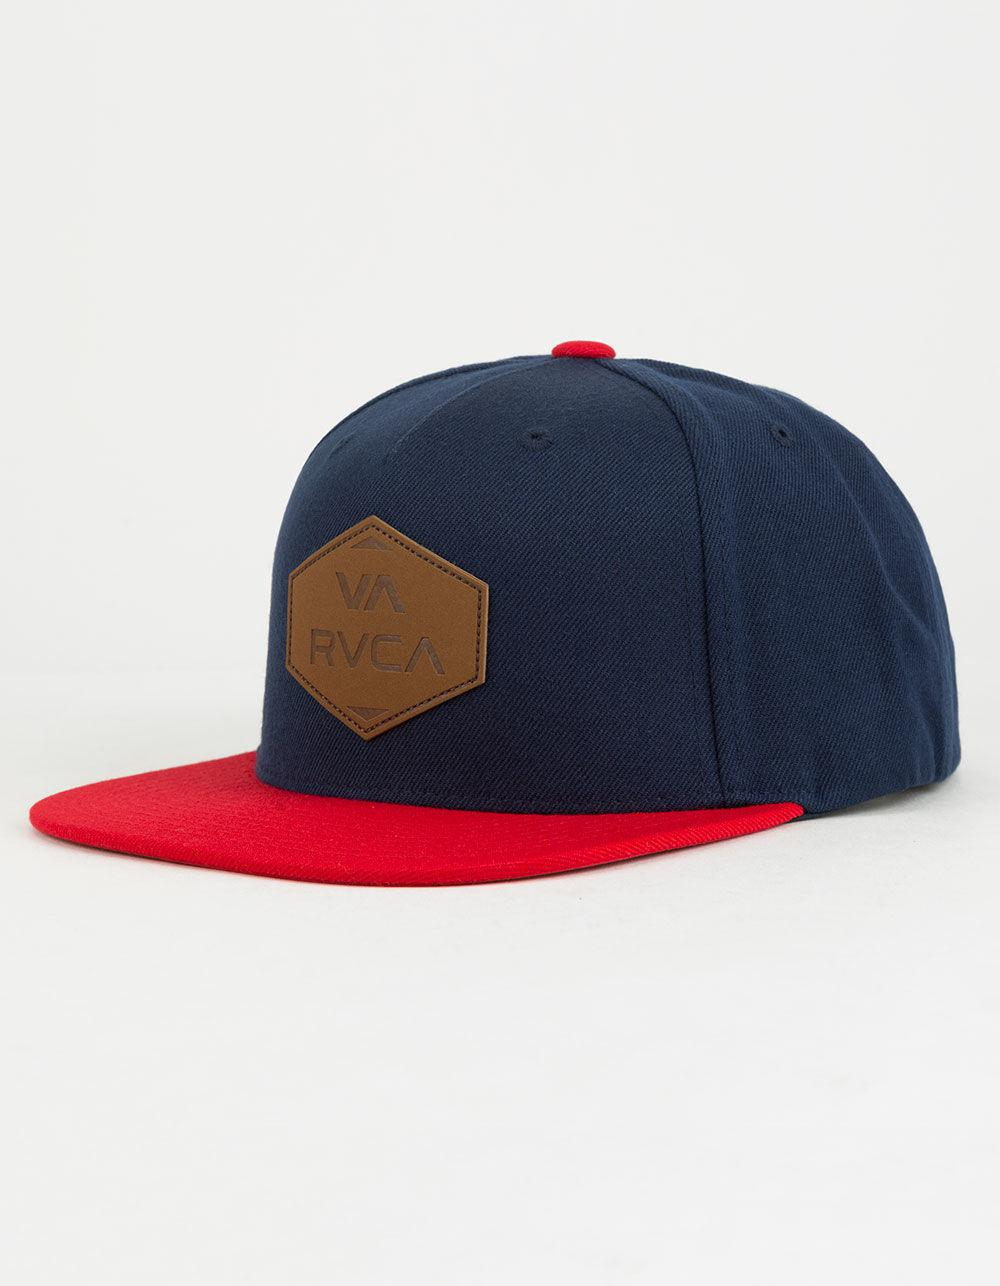 check out e2ac0 c87f1 ... coupon norway rvca. blue what mens snapback hat 14ddb 9b662 086aa c80c5